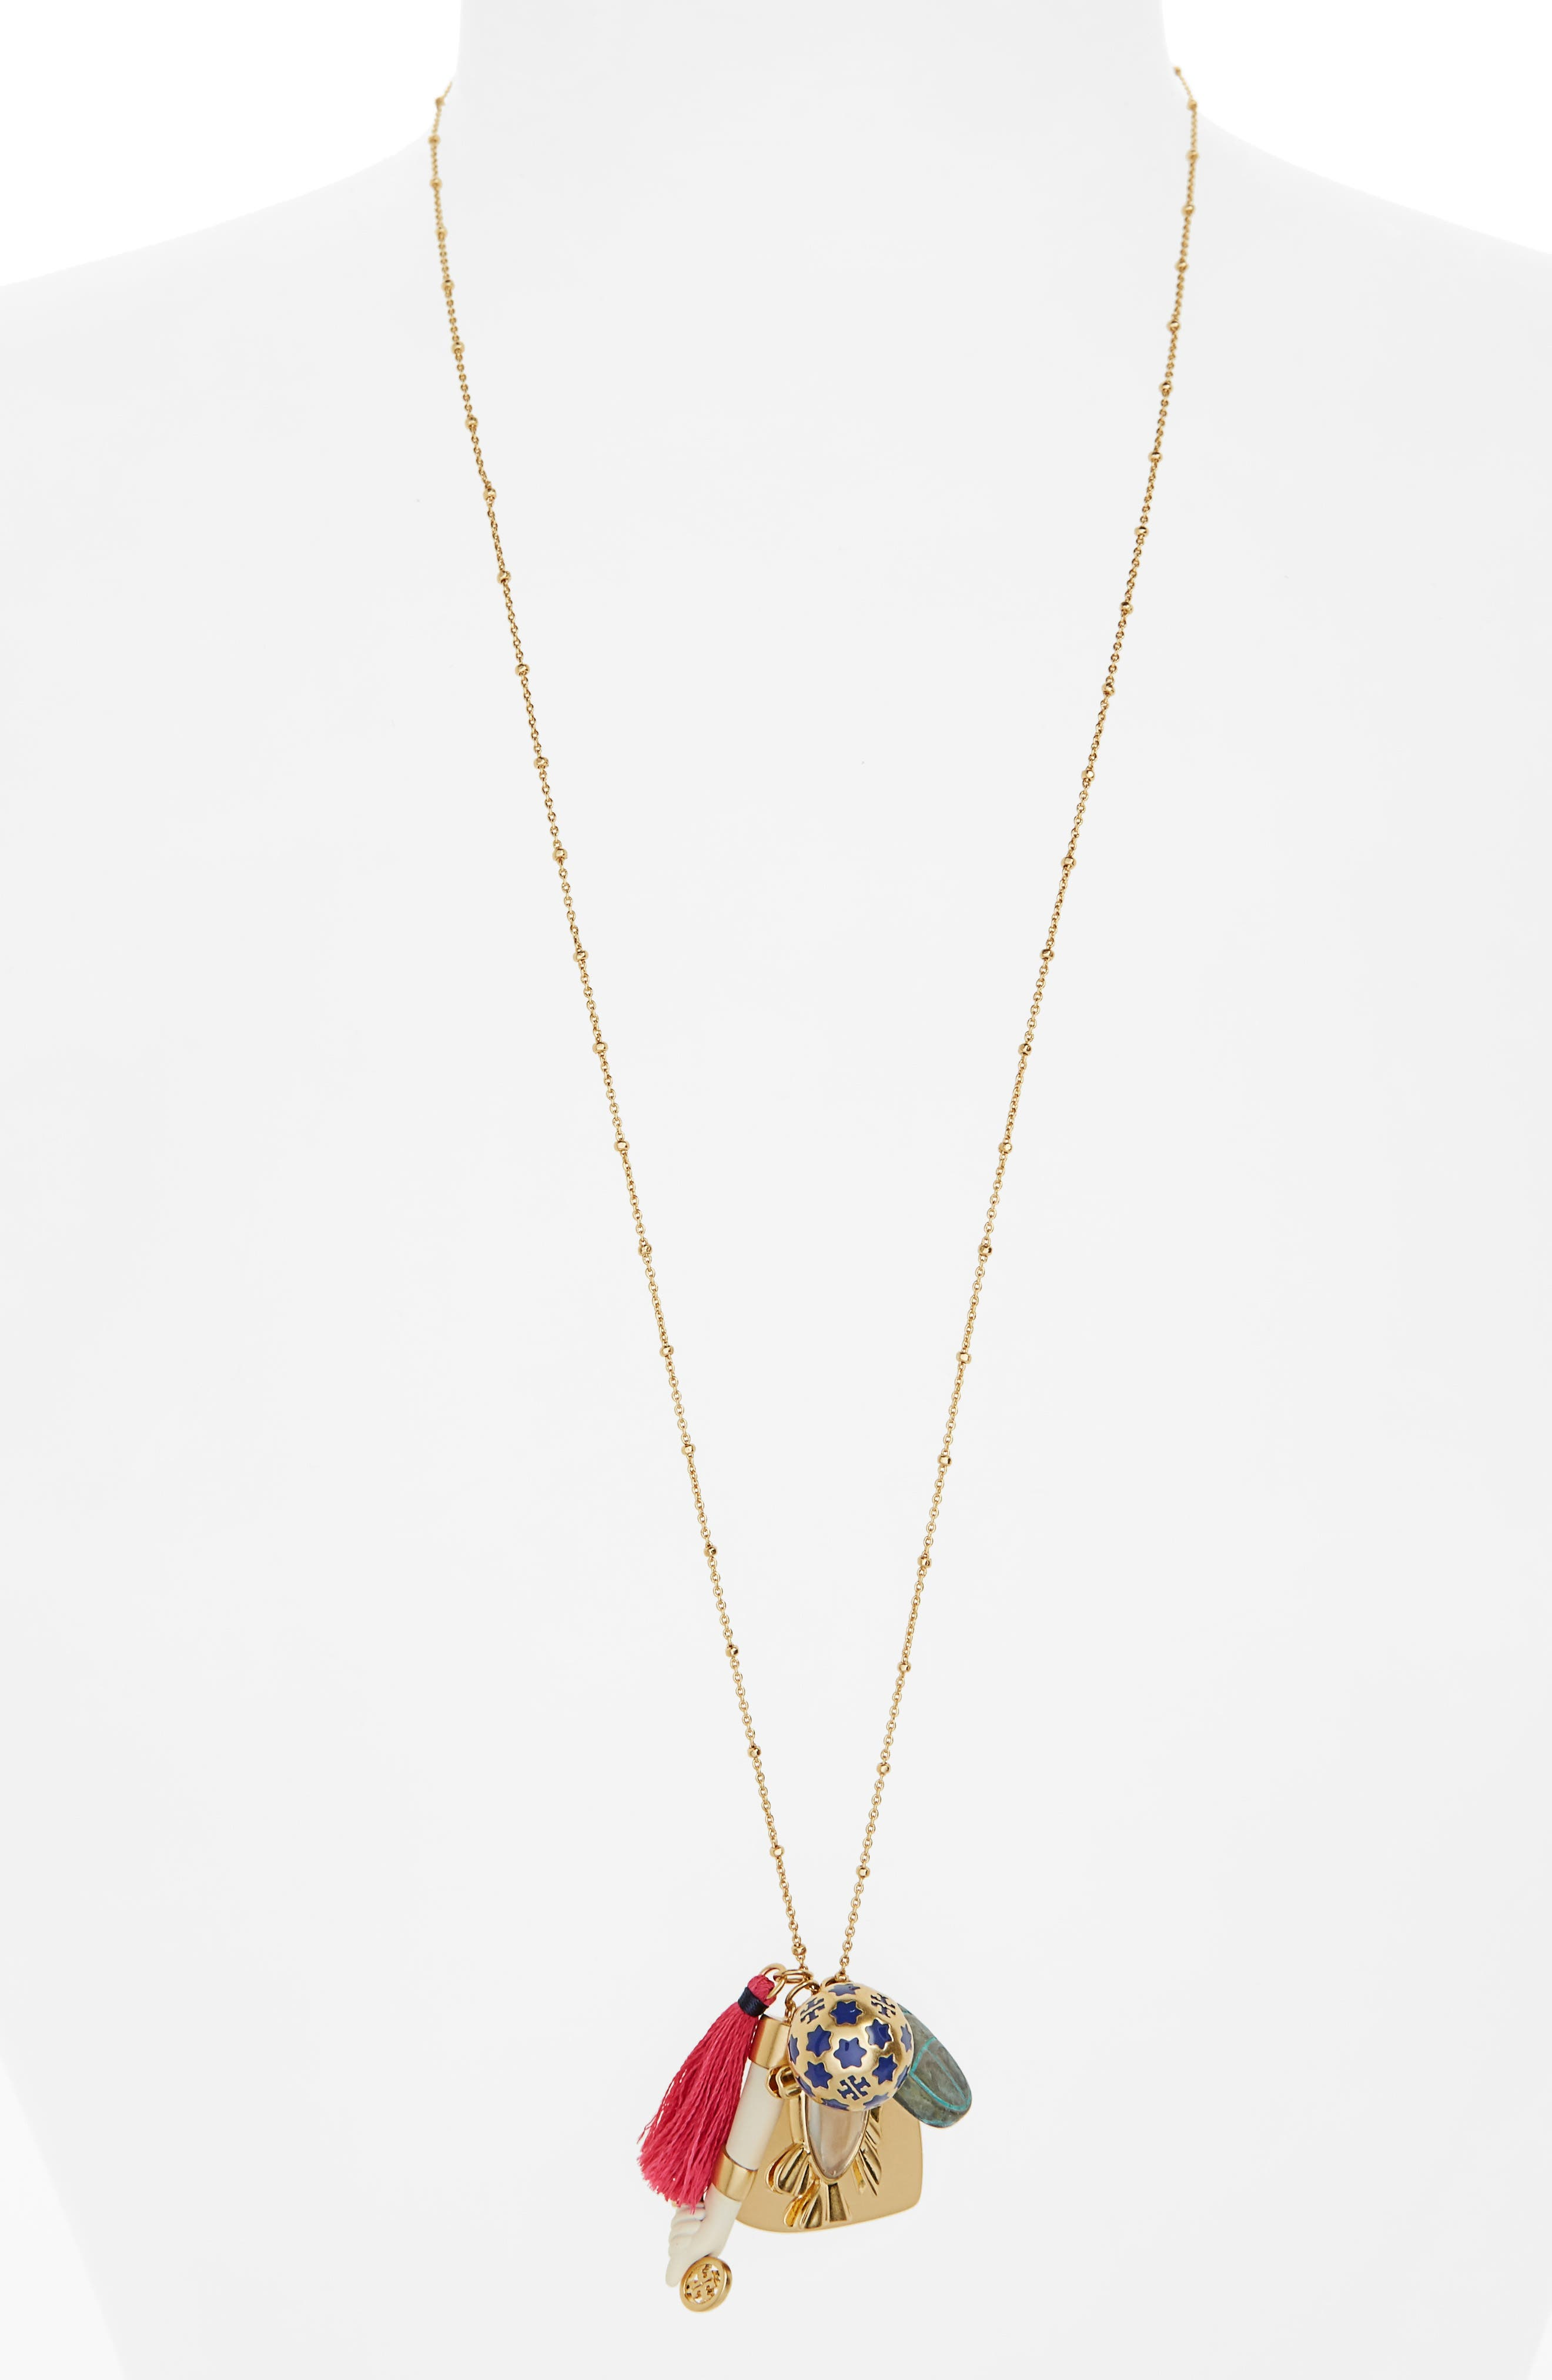 Tory Burch Cluster Pendant Necklace